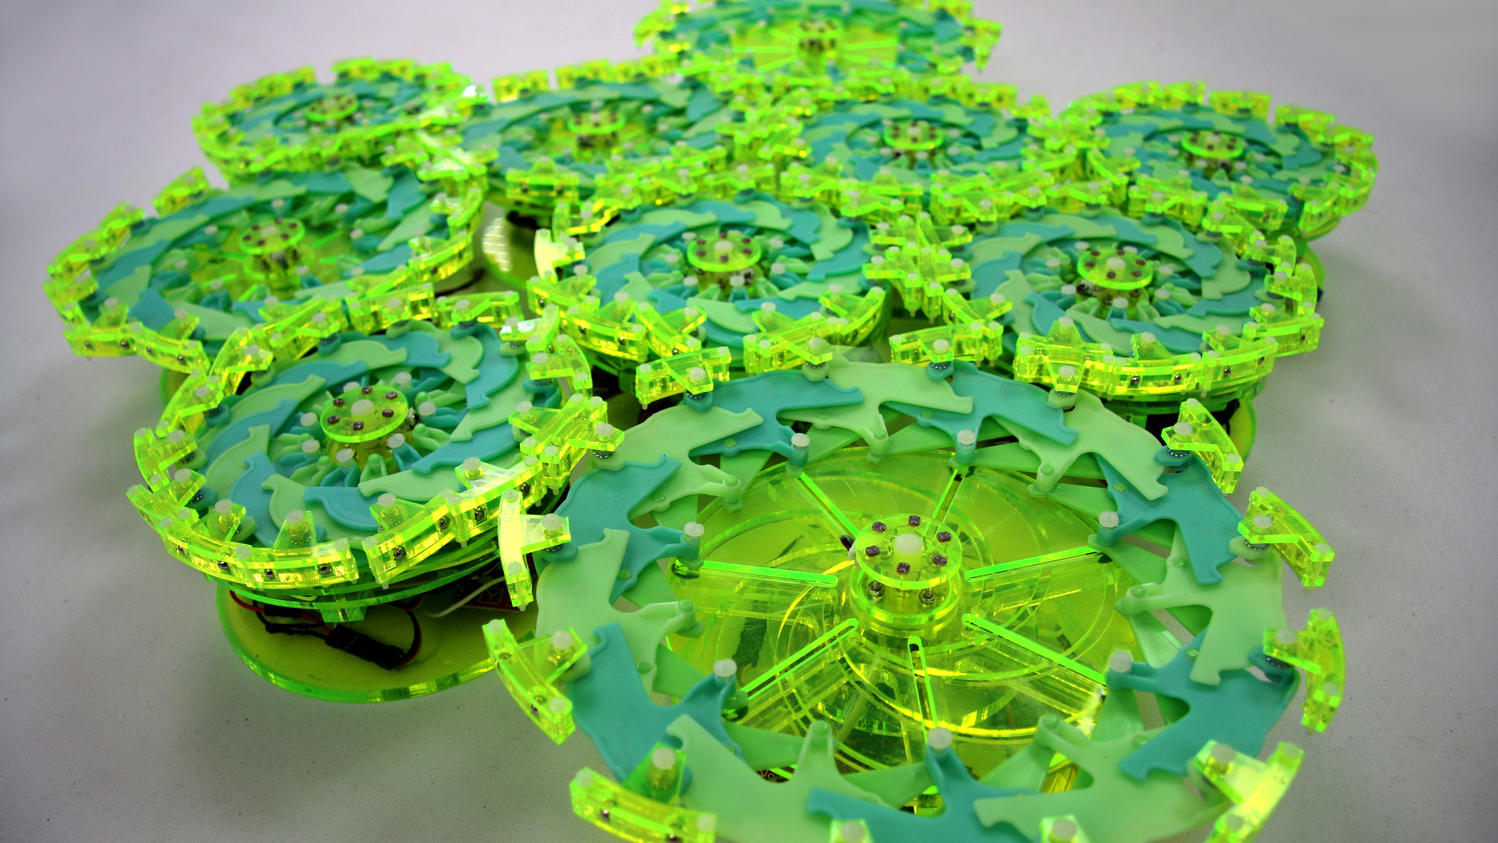 Green robot discs that work together like an organism